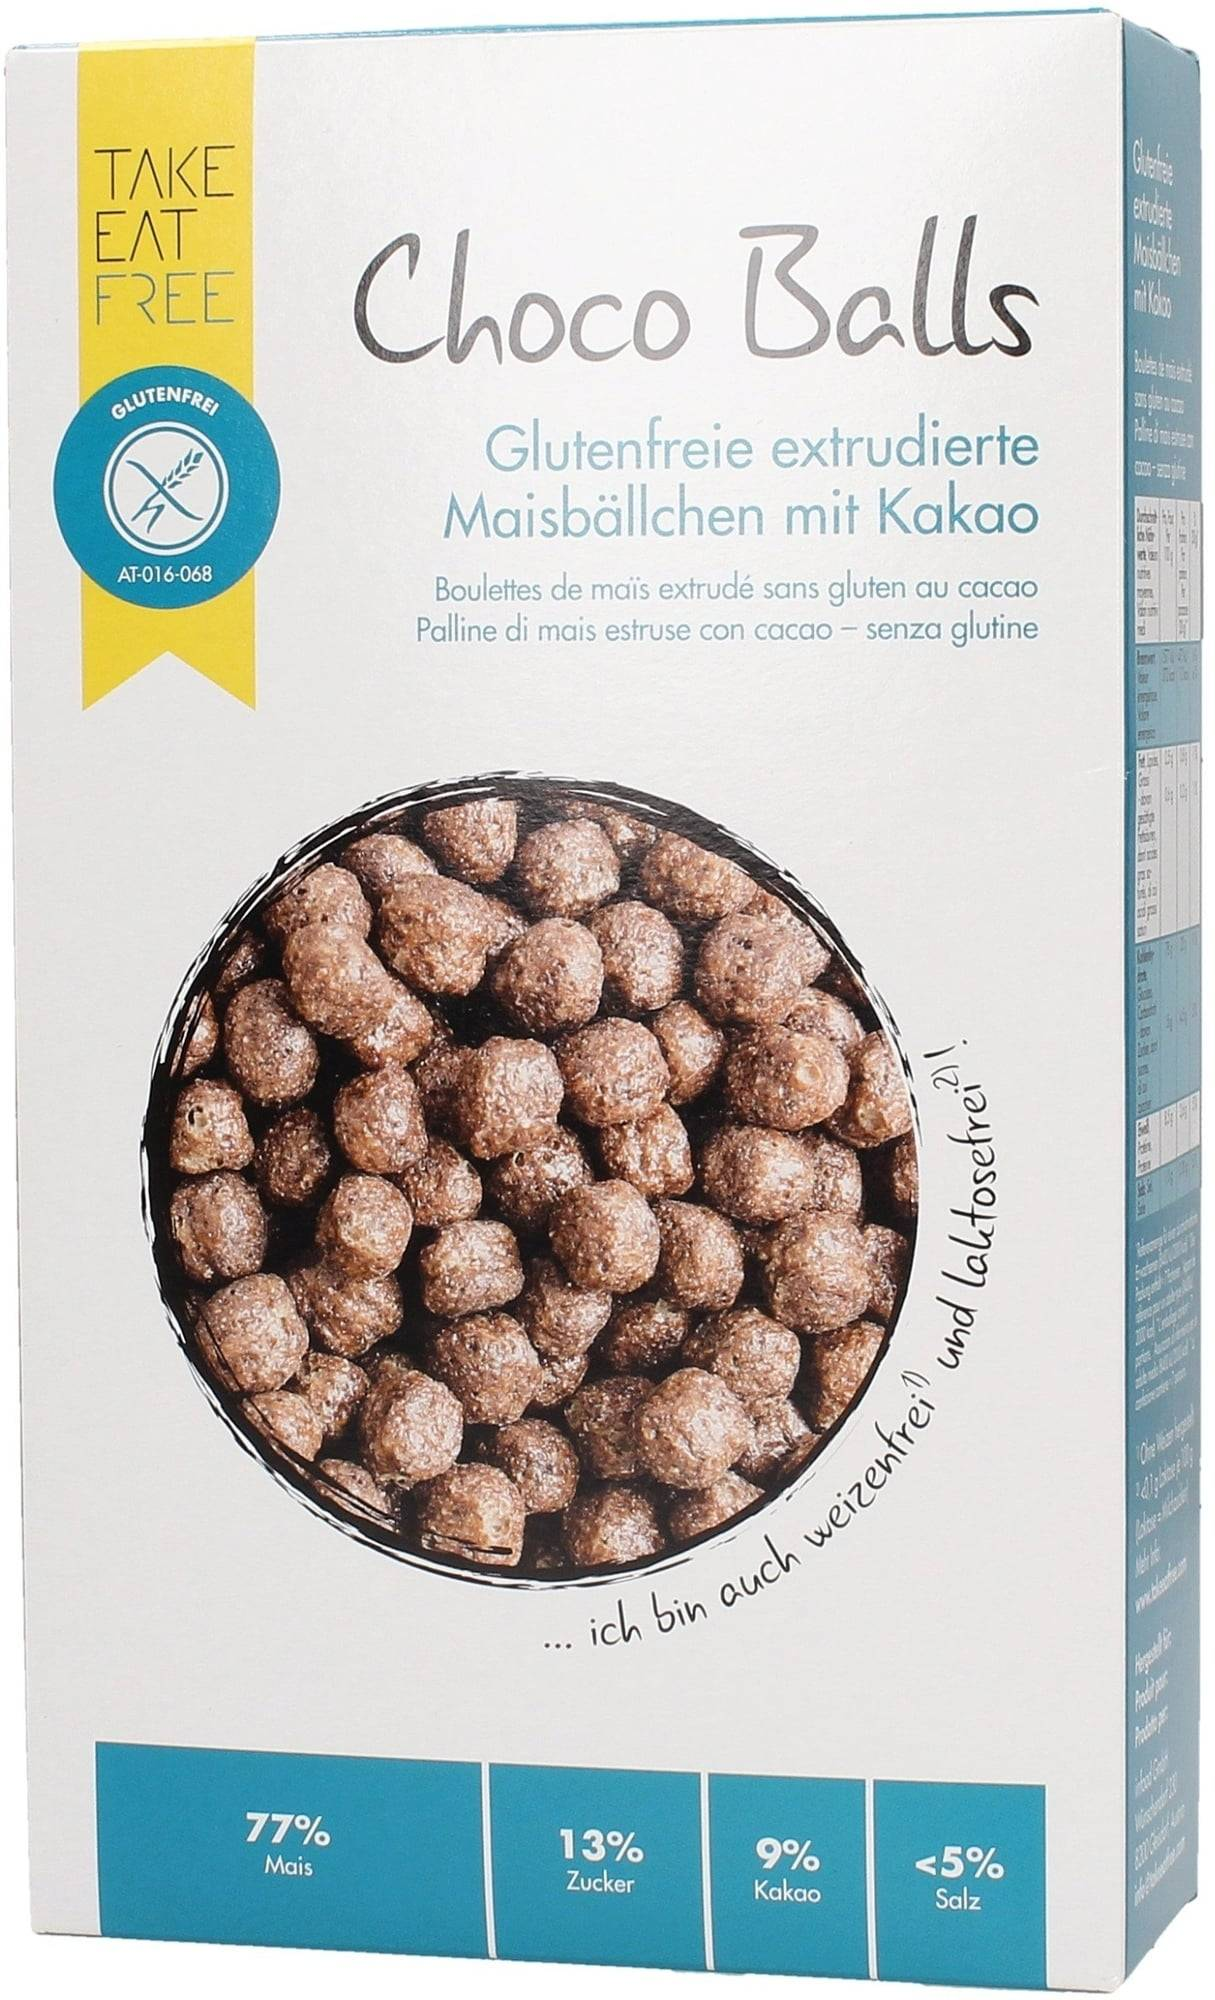 TAKE EAT FREE Billes de Chocolat sans Gluten - 200 g